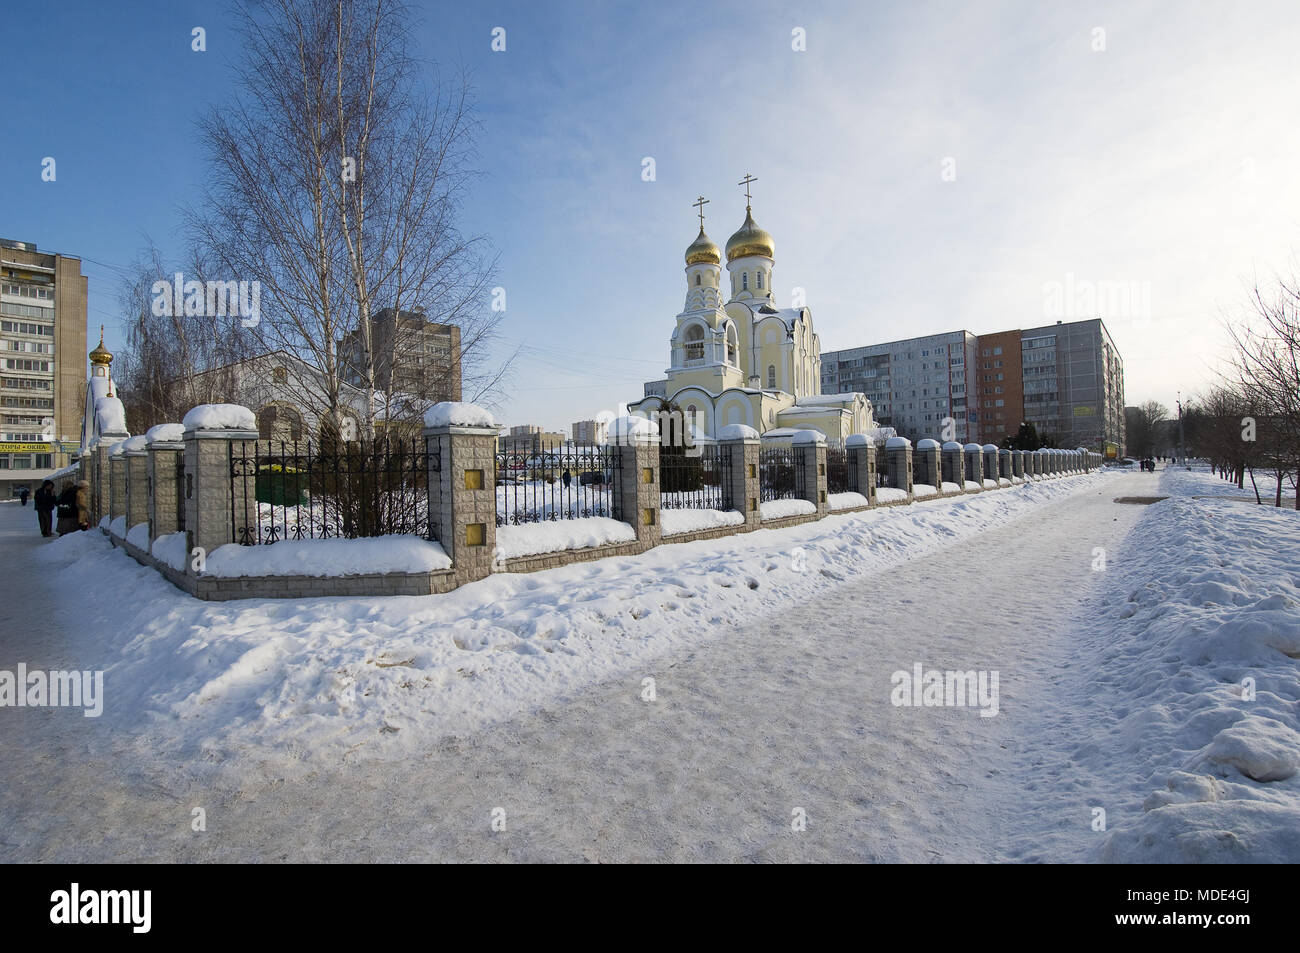 How to get from Moscow to Obninsk. How to get from Moscow to Obninsk by public transport, except for the train